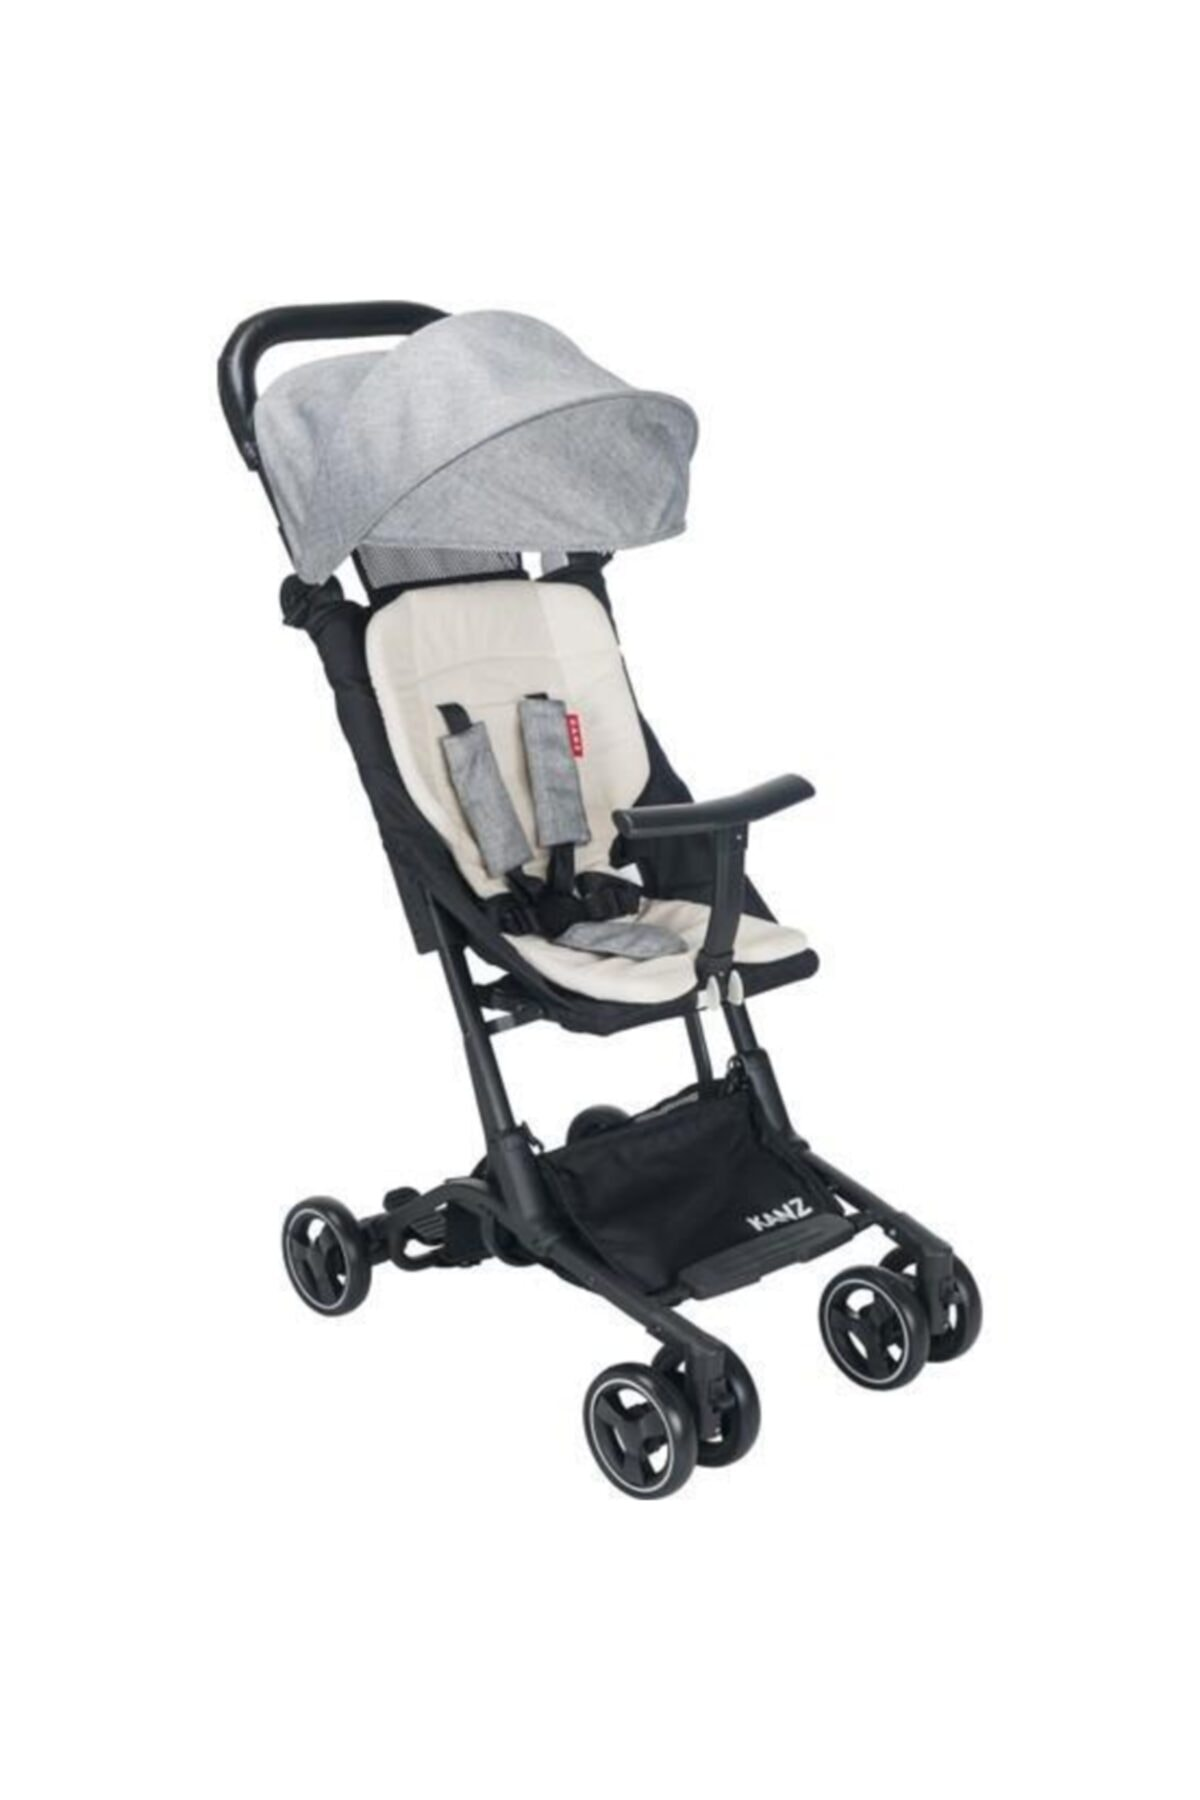 Baby stroller Compact design stroller quality car luxury stroller Bebk stroller with hand luggage on plane in folded state